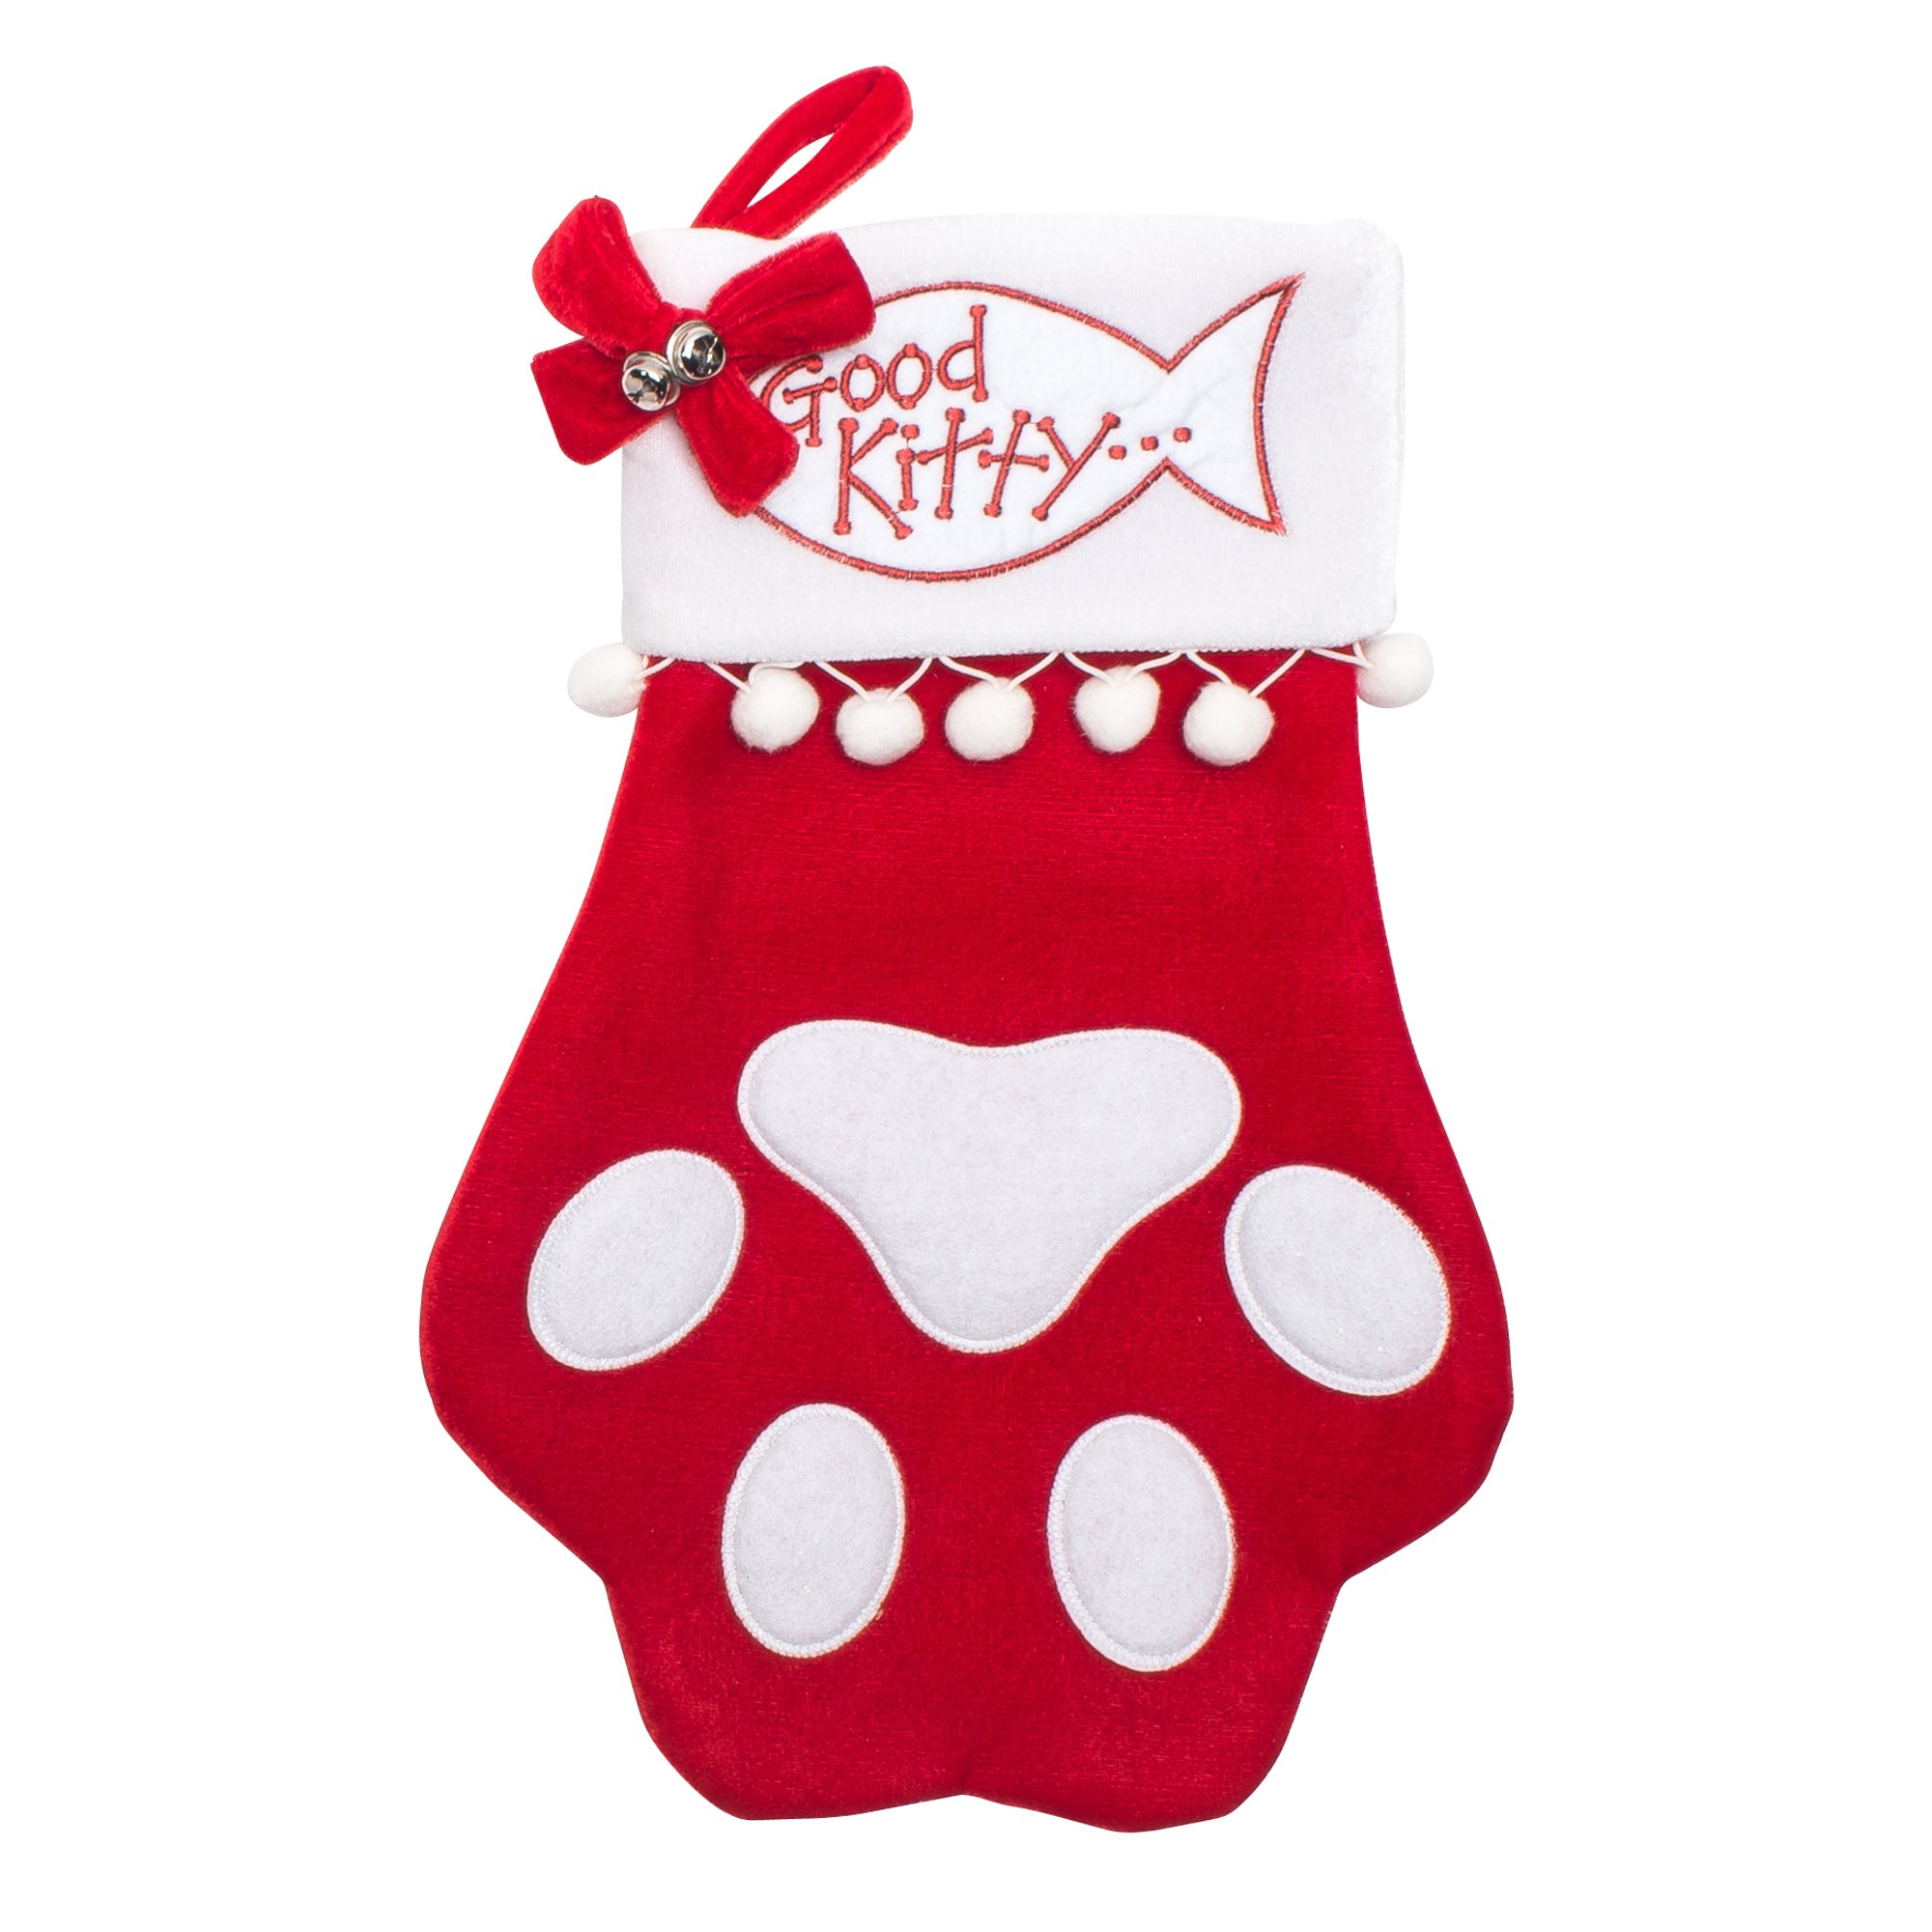 Cat Christmas Stocking - Cat PAW - Good Kitty - large size 18""